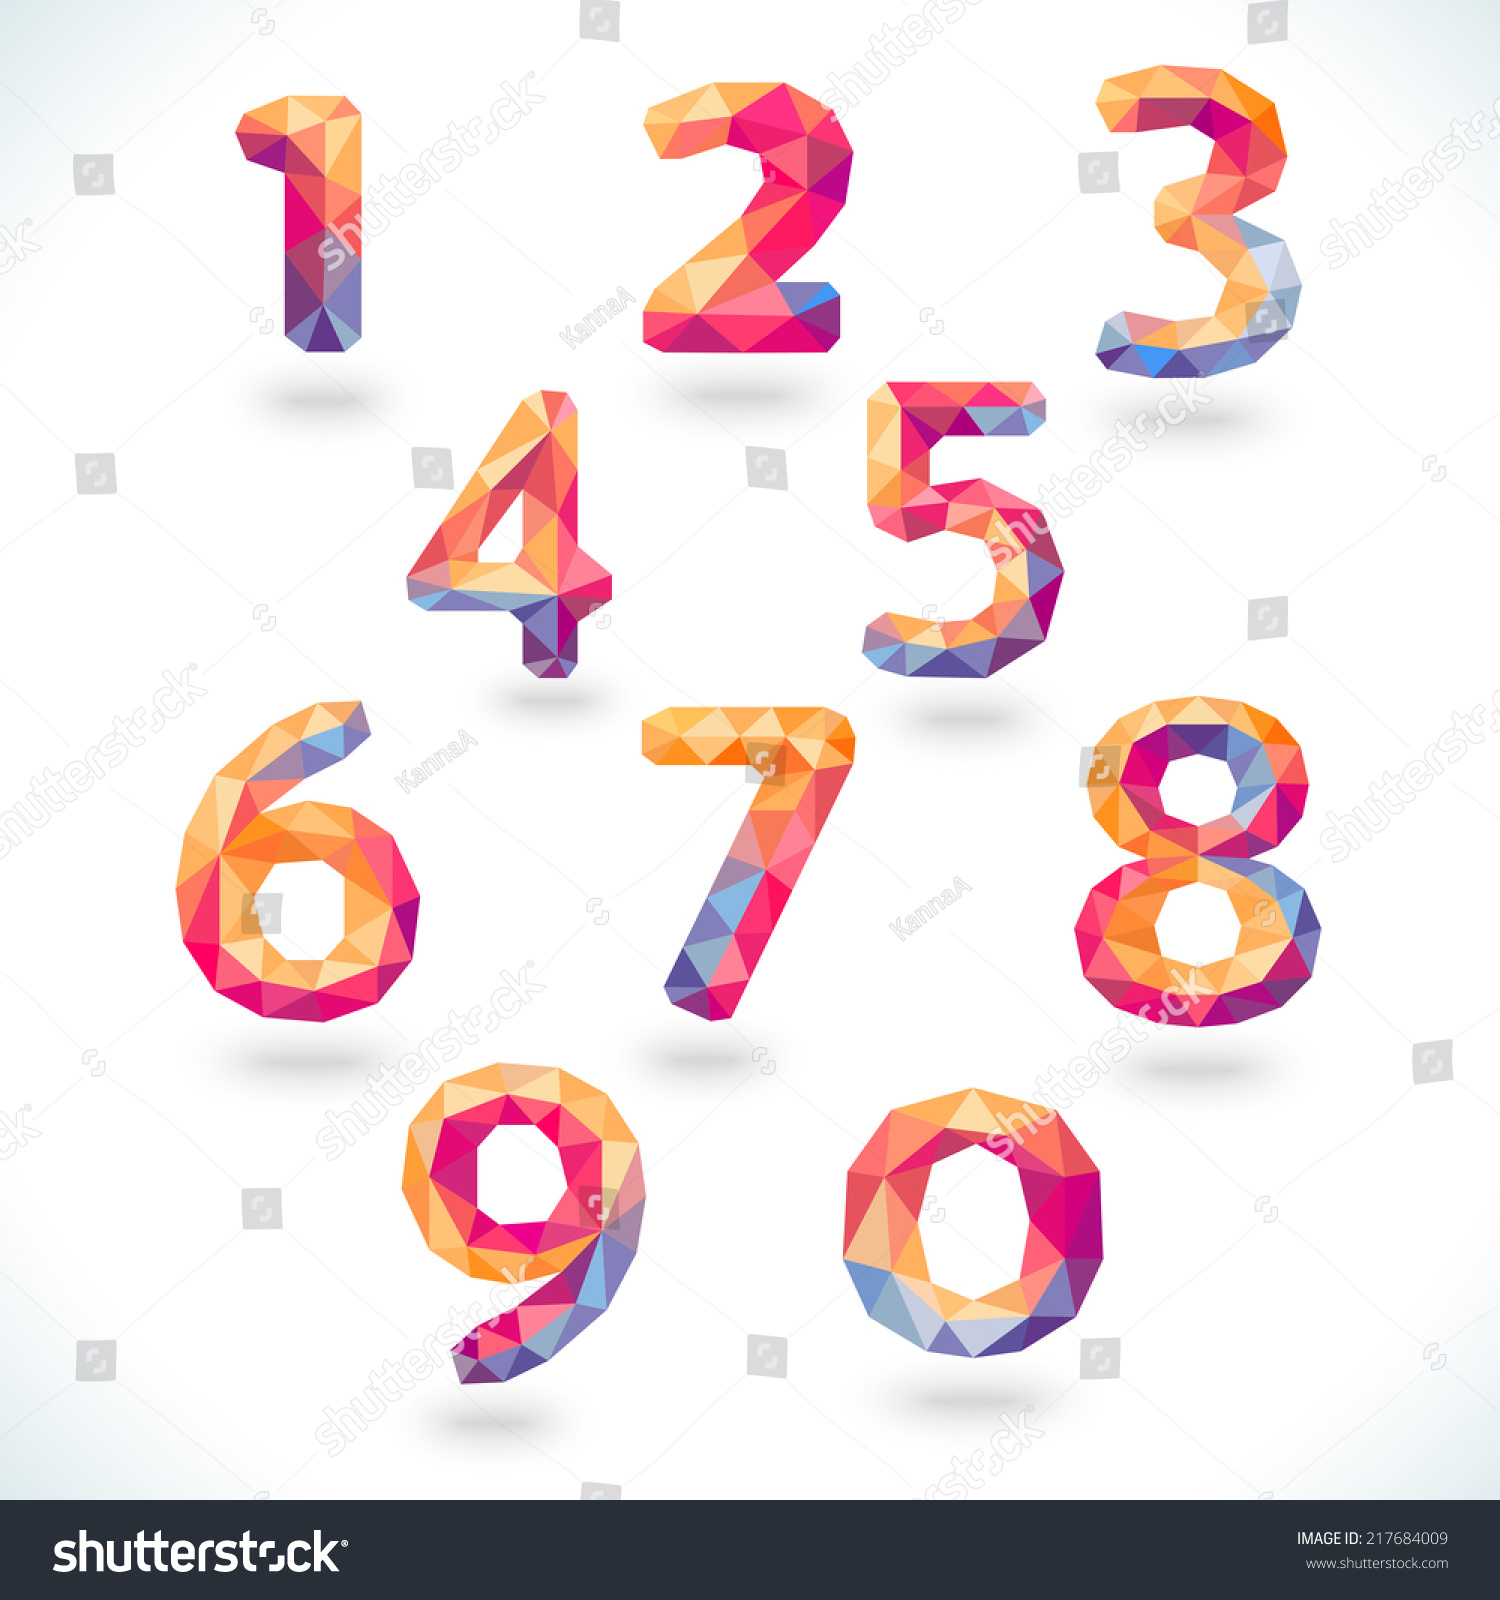 Numbers set modern polygonal crystal style stock vektor for Blueprint number